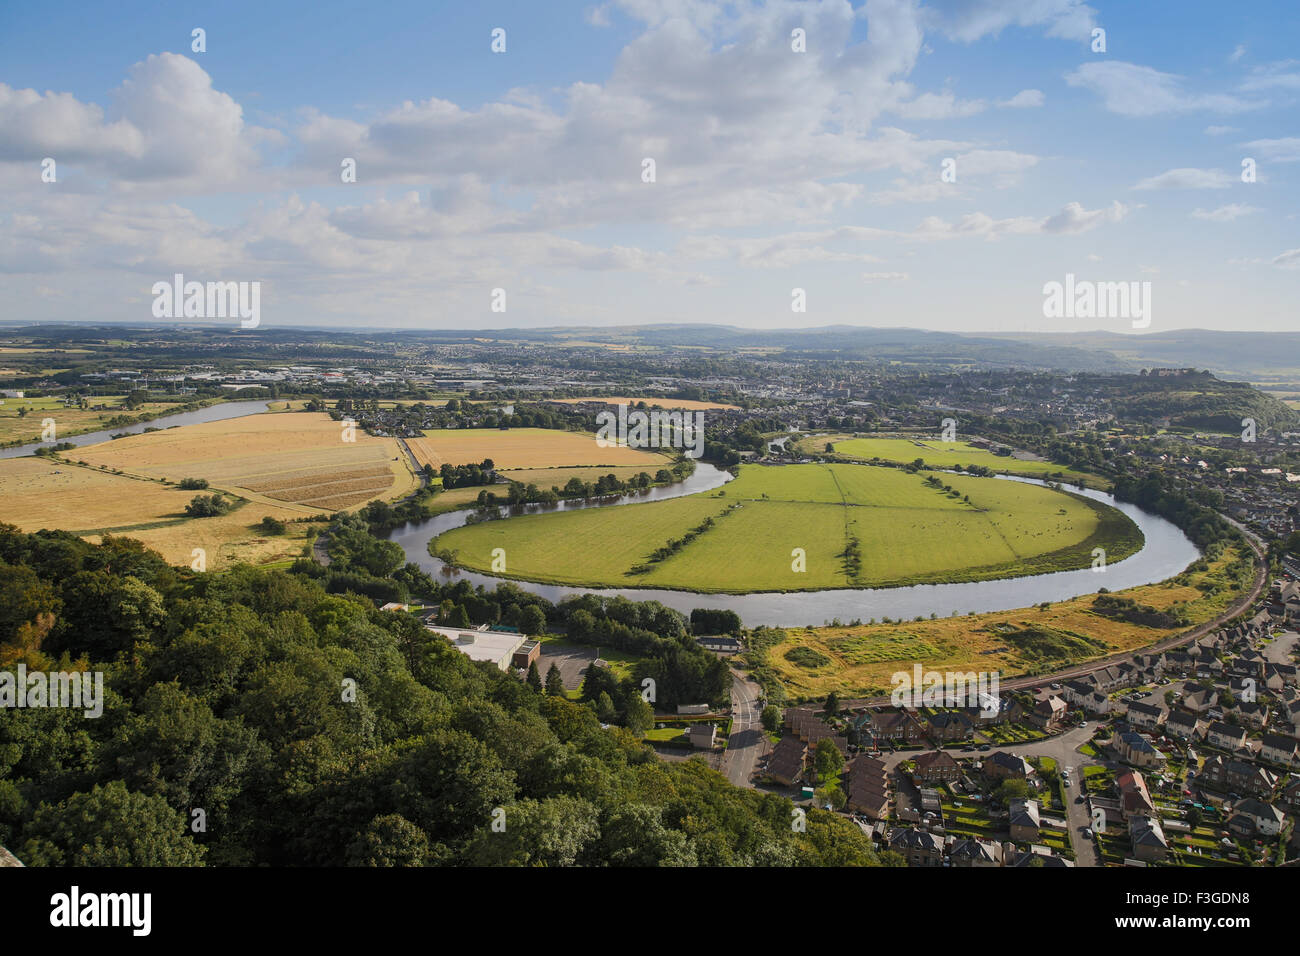 The River Forth and Stirling viewed from The National Wallace Monument, Stirling in Scotland Stock Photo